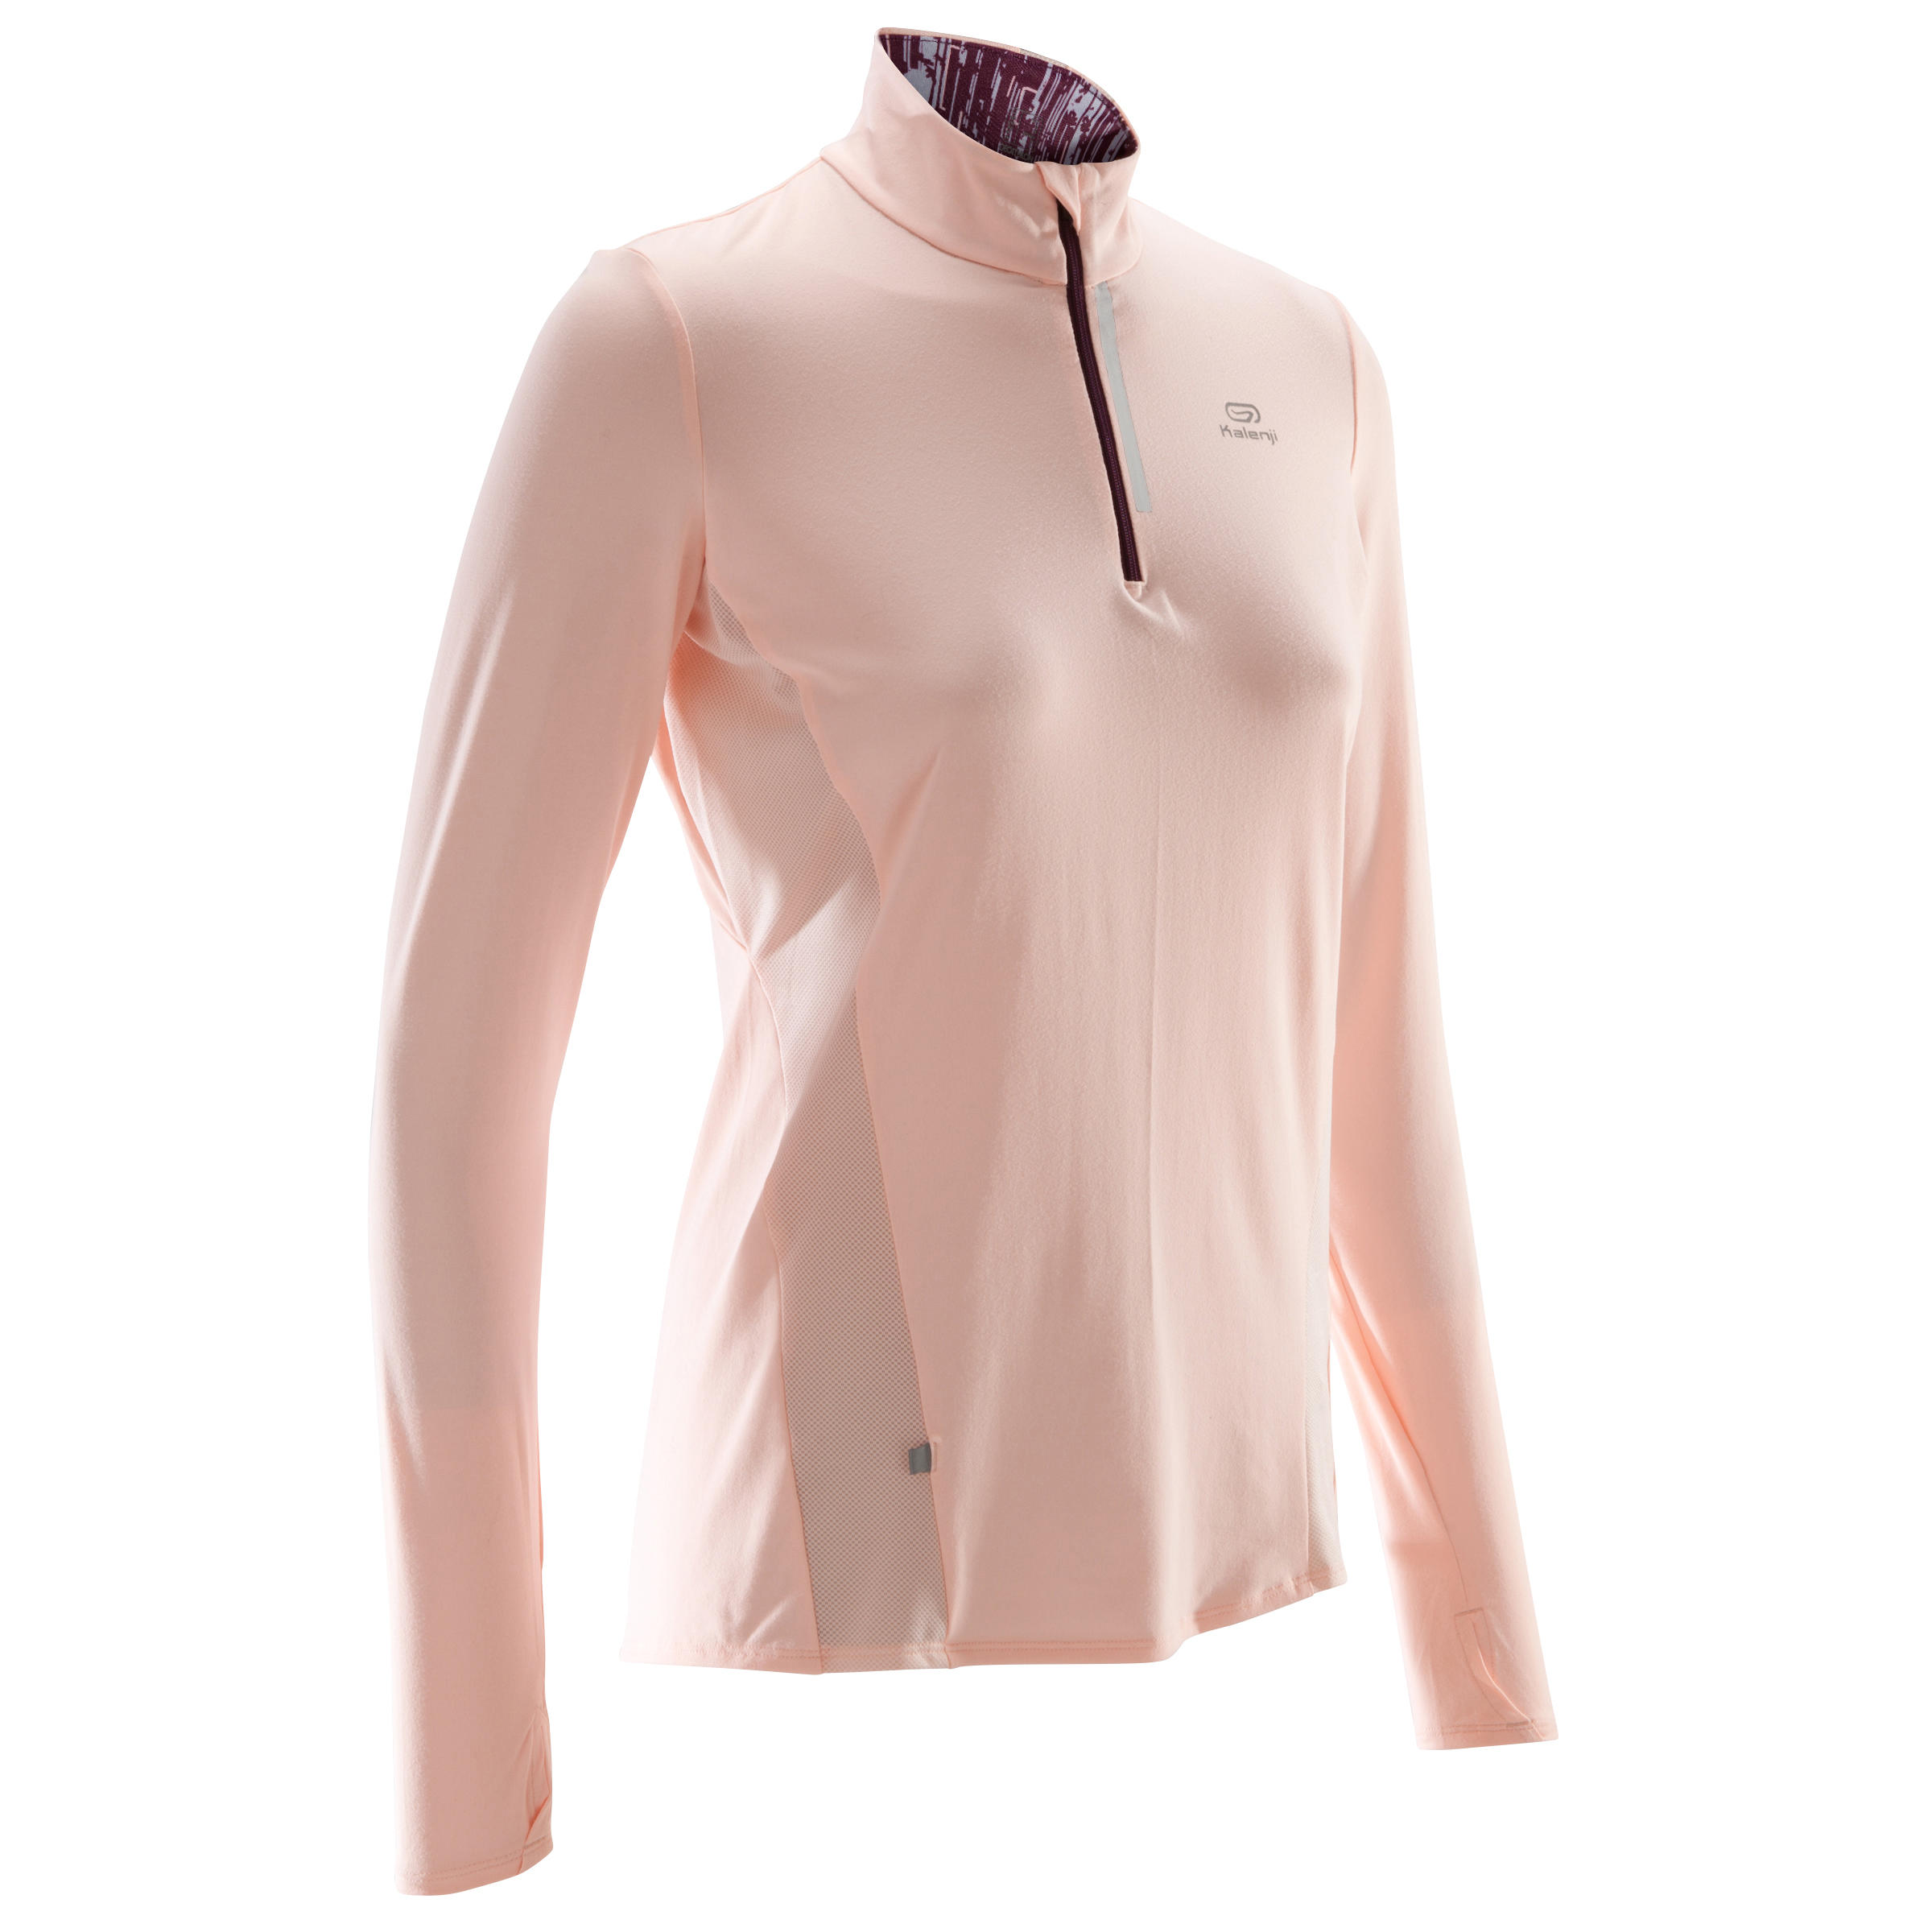 Rose Manches Longues Clair Run Femme Maillot Jogging DryZip EDIW9H2Y